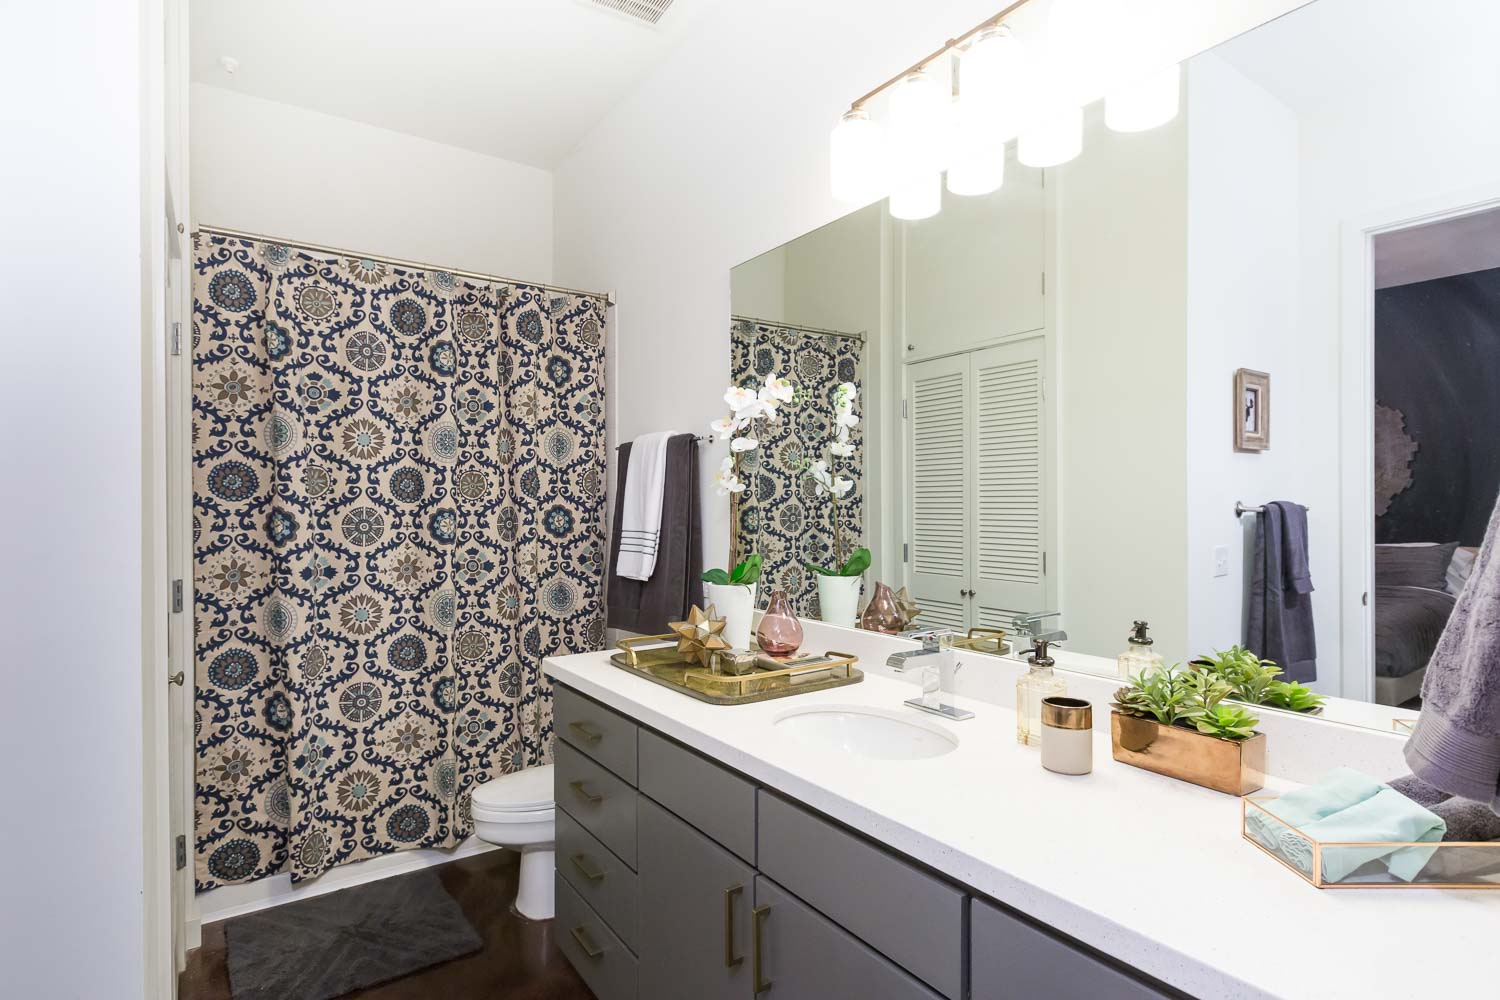 The bathroom simply received a new light fixture, bold shower curtain, and gray paint with gold pulls for the cabinets.